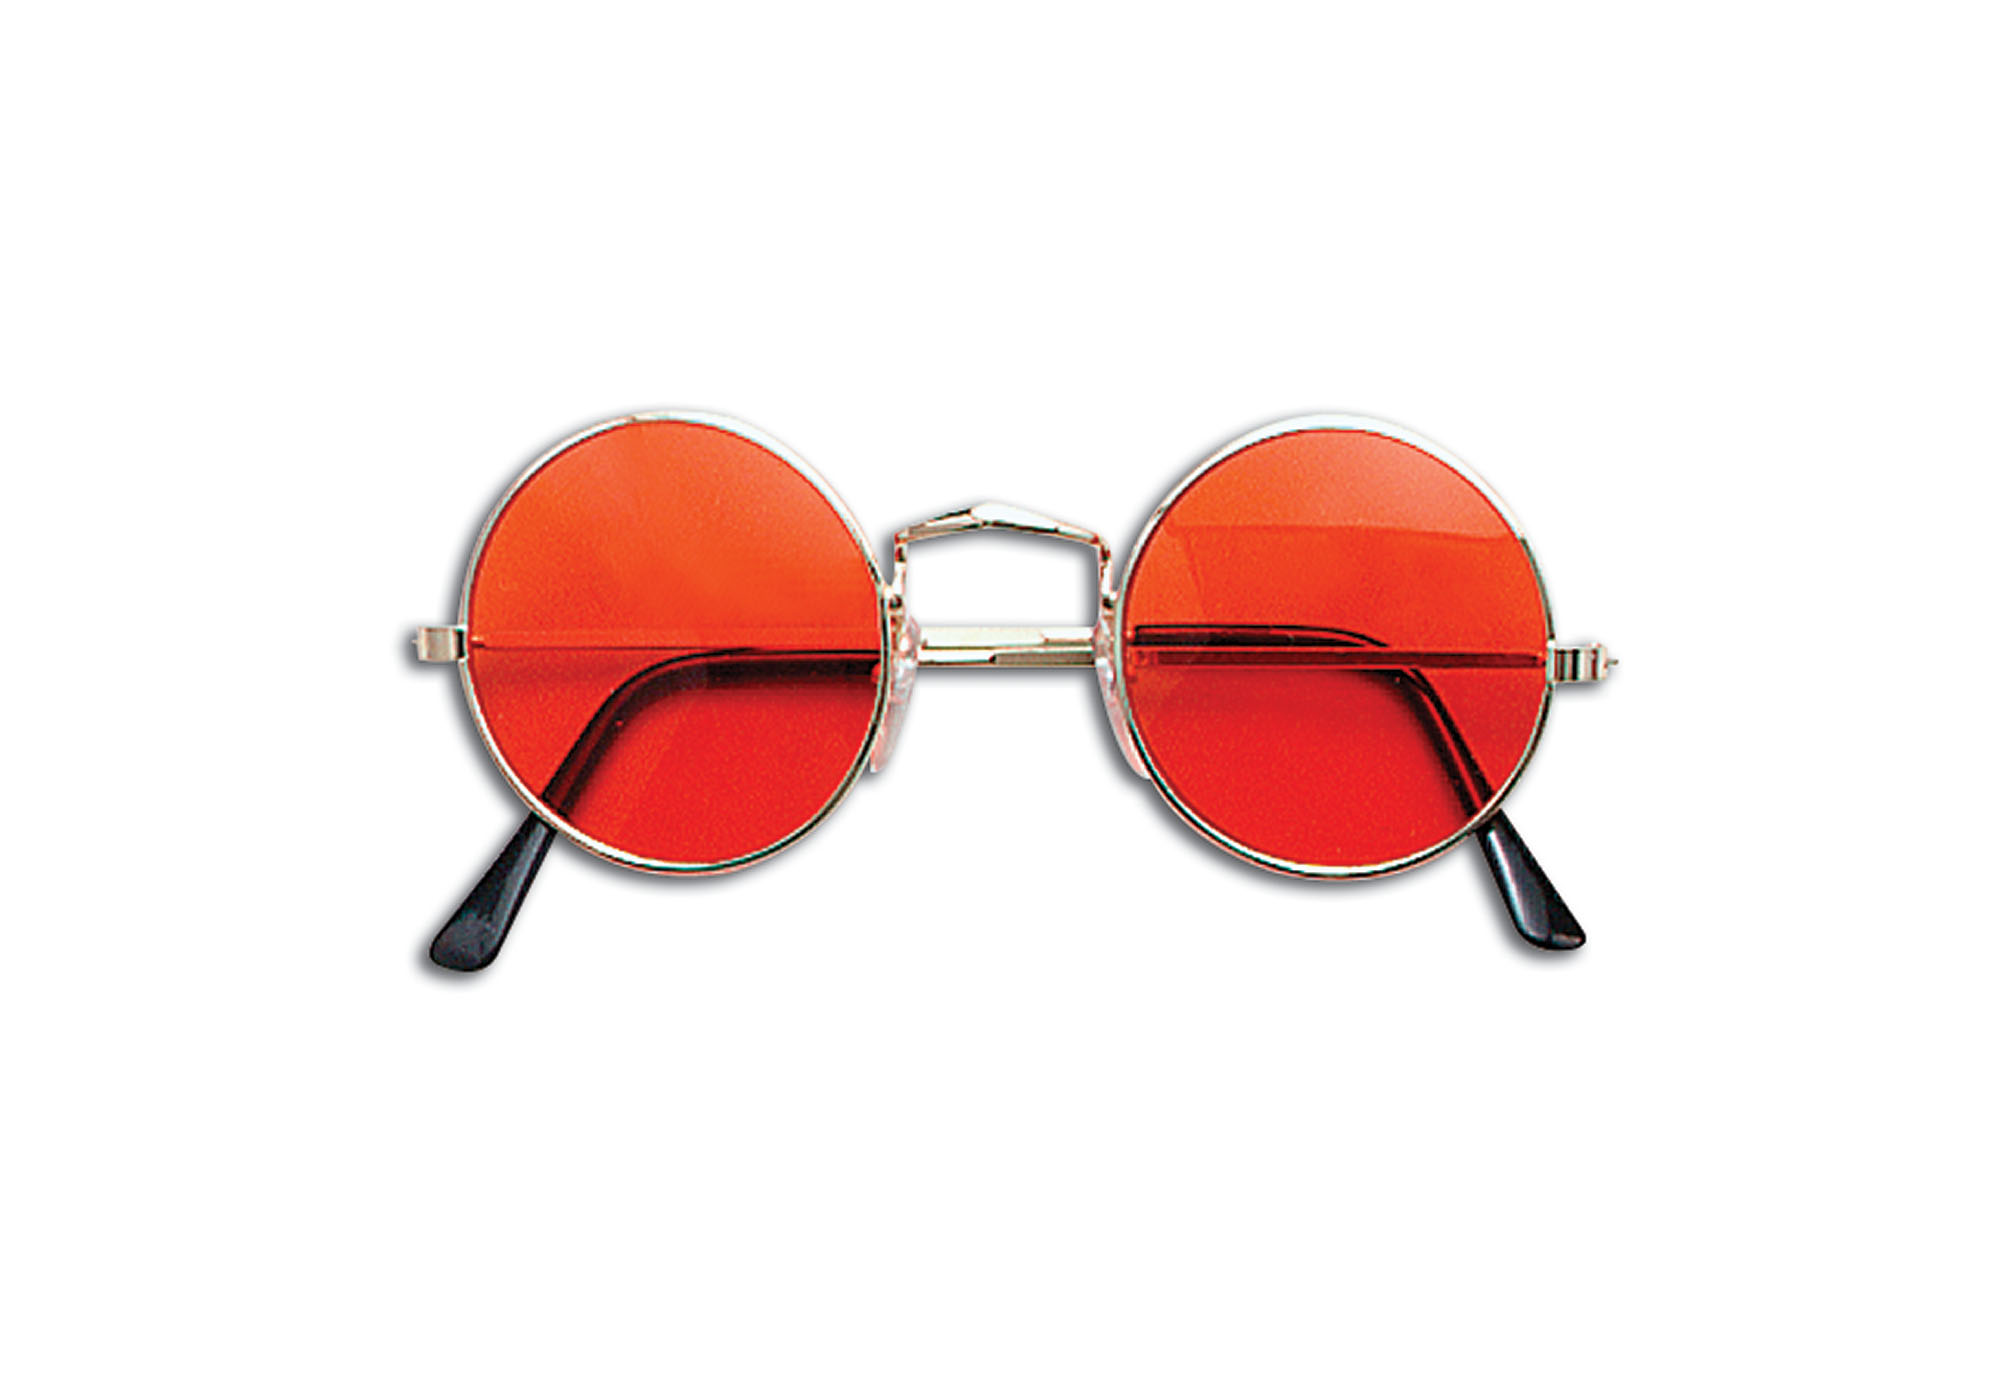 Orange hippy glasses